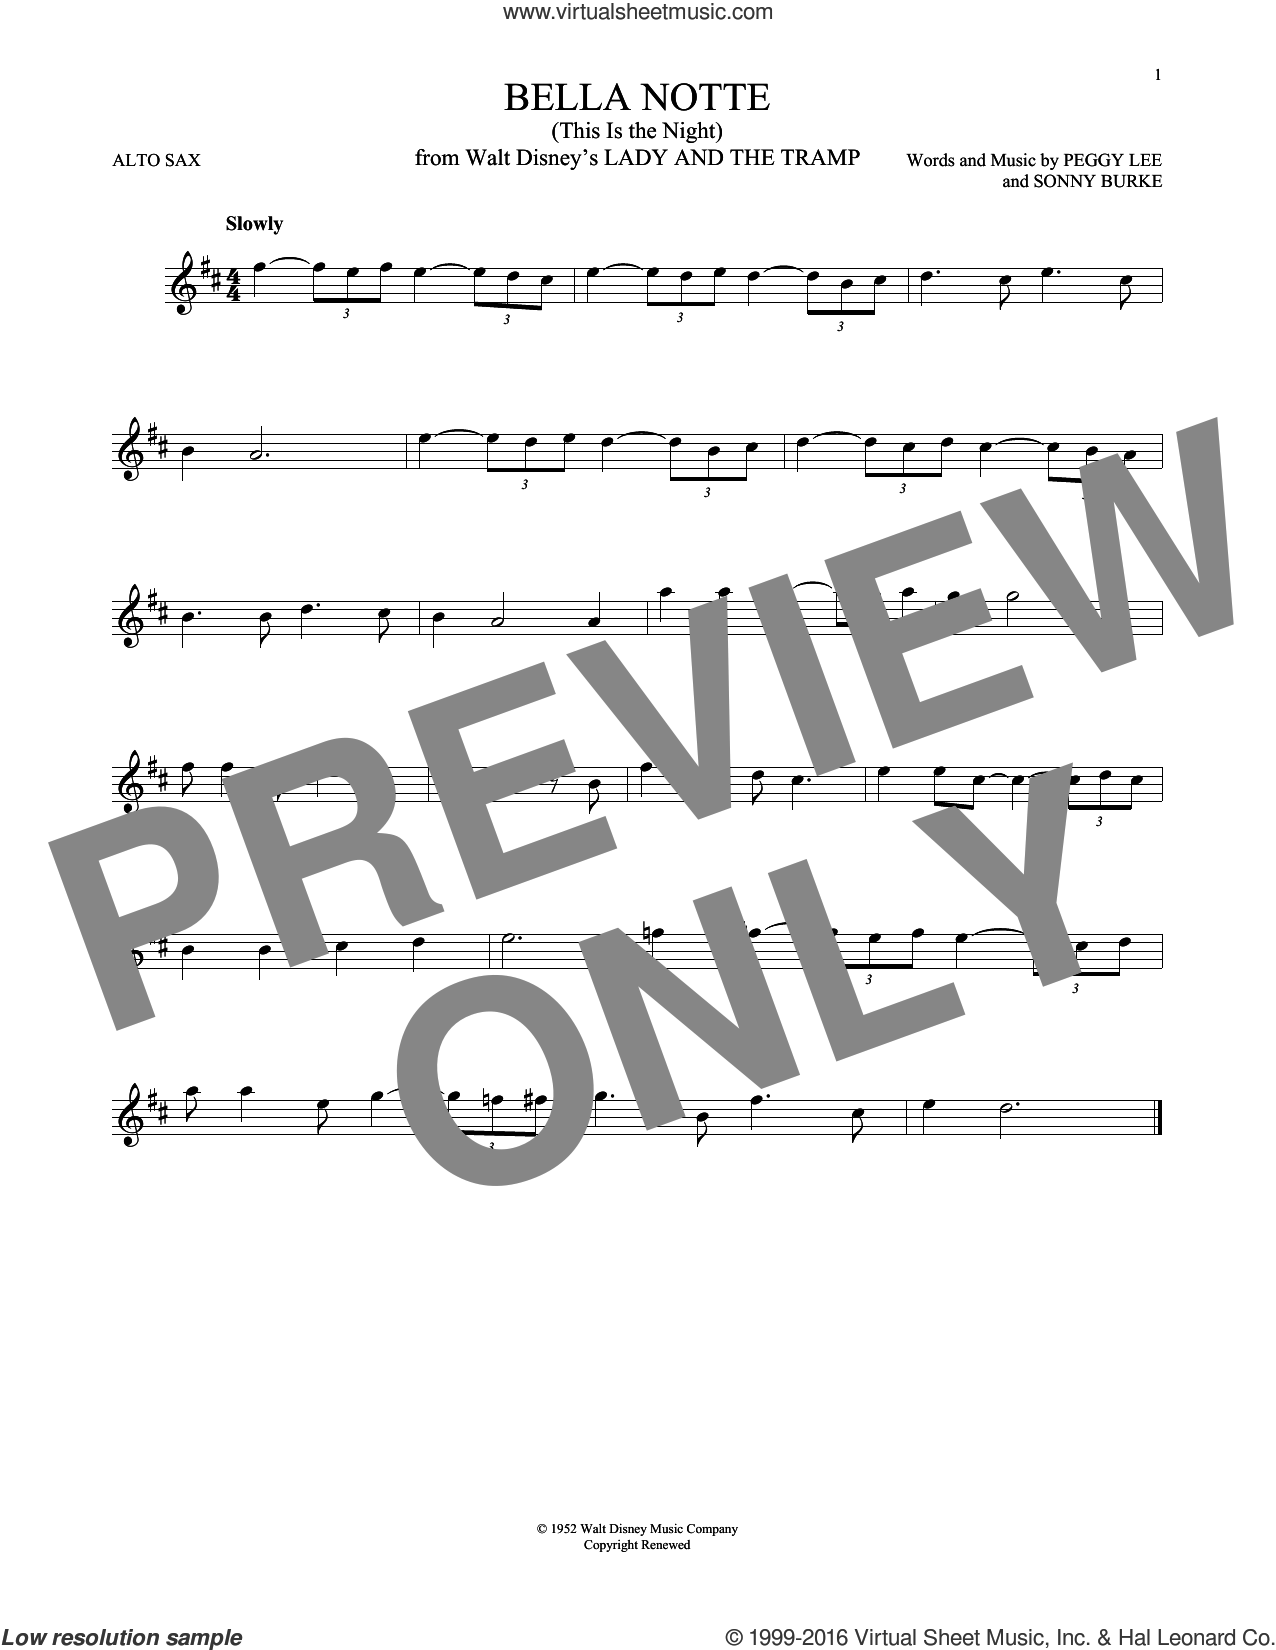 Bella Notte (from Lady And The Tramp) sheet music for alto saxophone solo by Peggy Lee & Sonny Burke, Peggy Lee and Sonny Burke, intermediate skill level